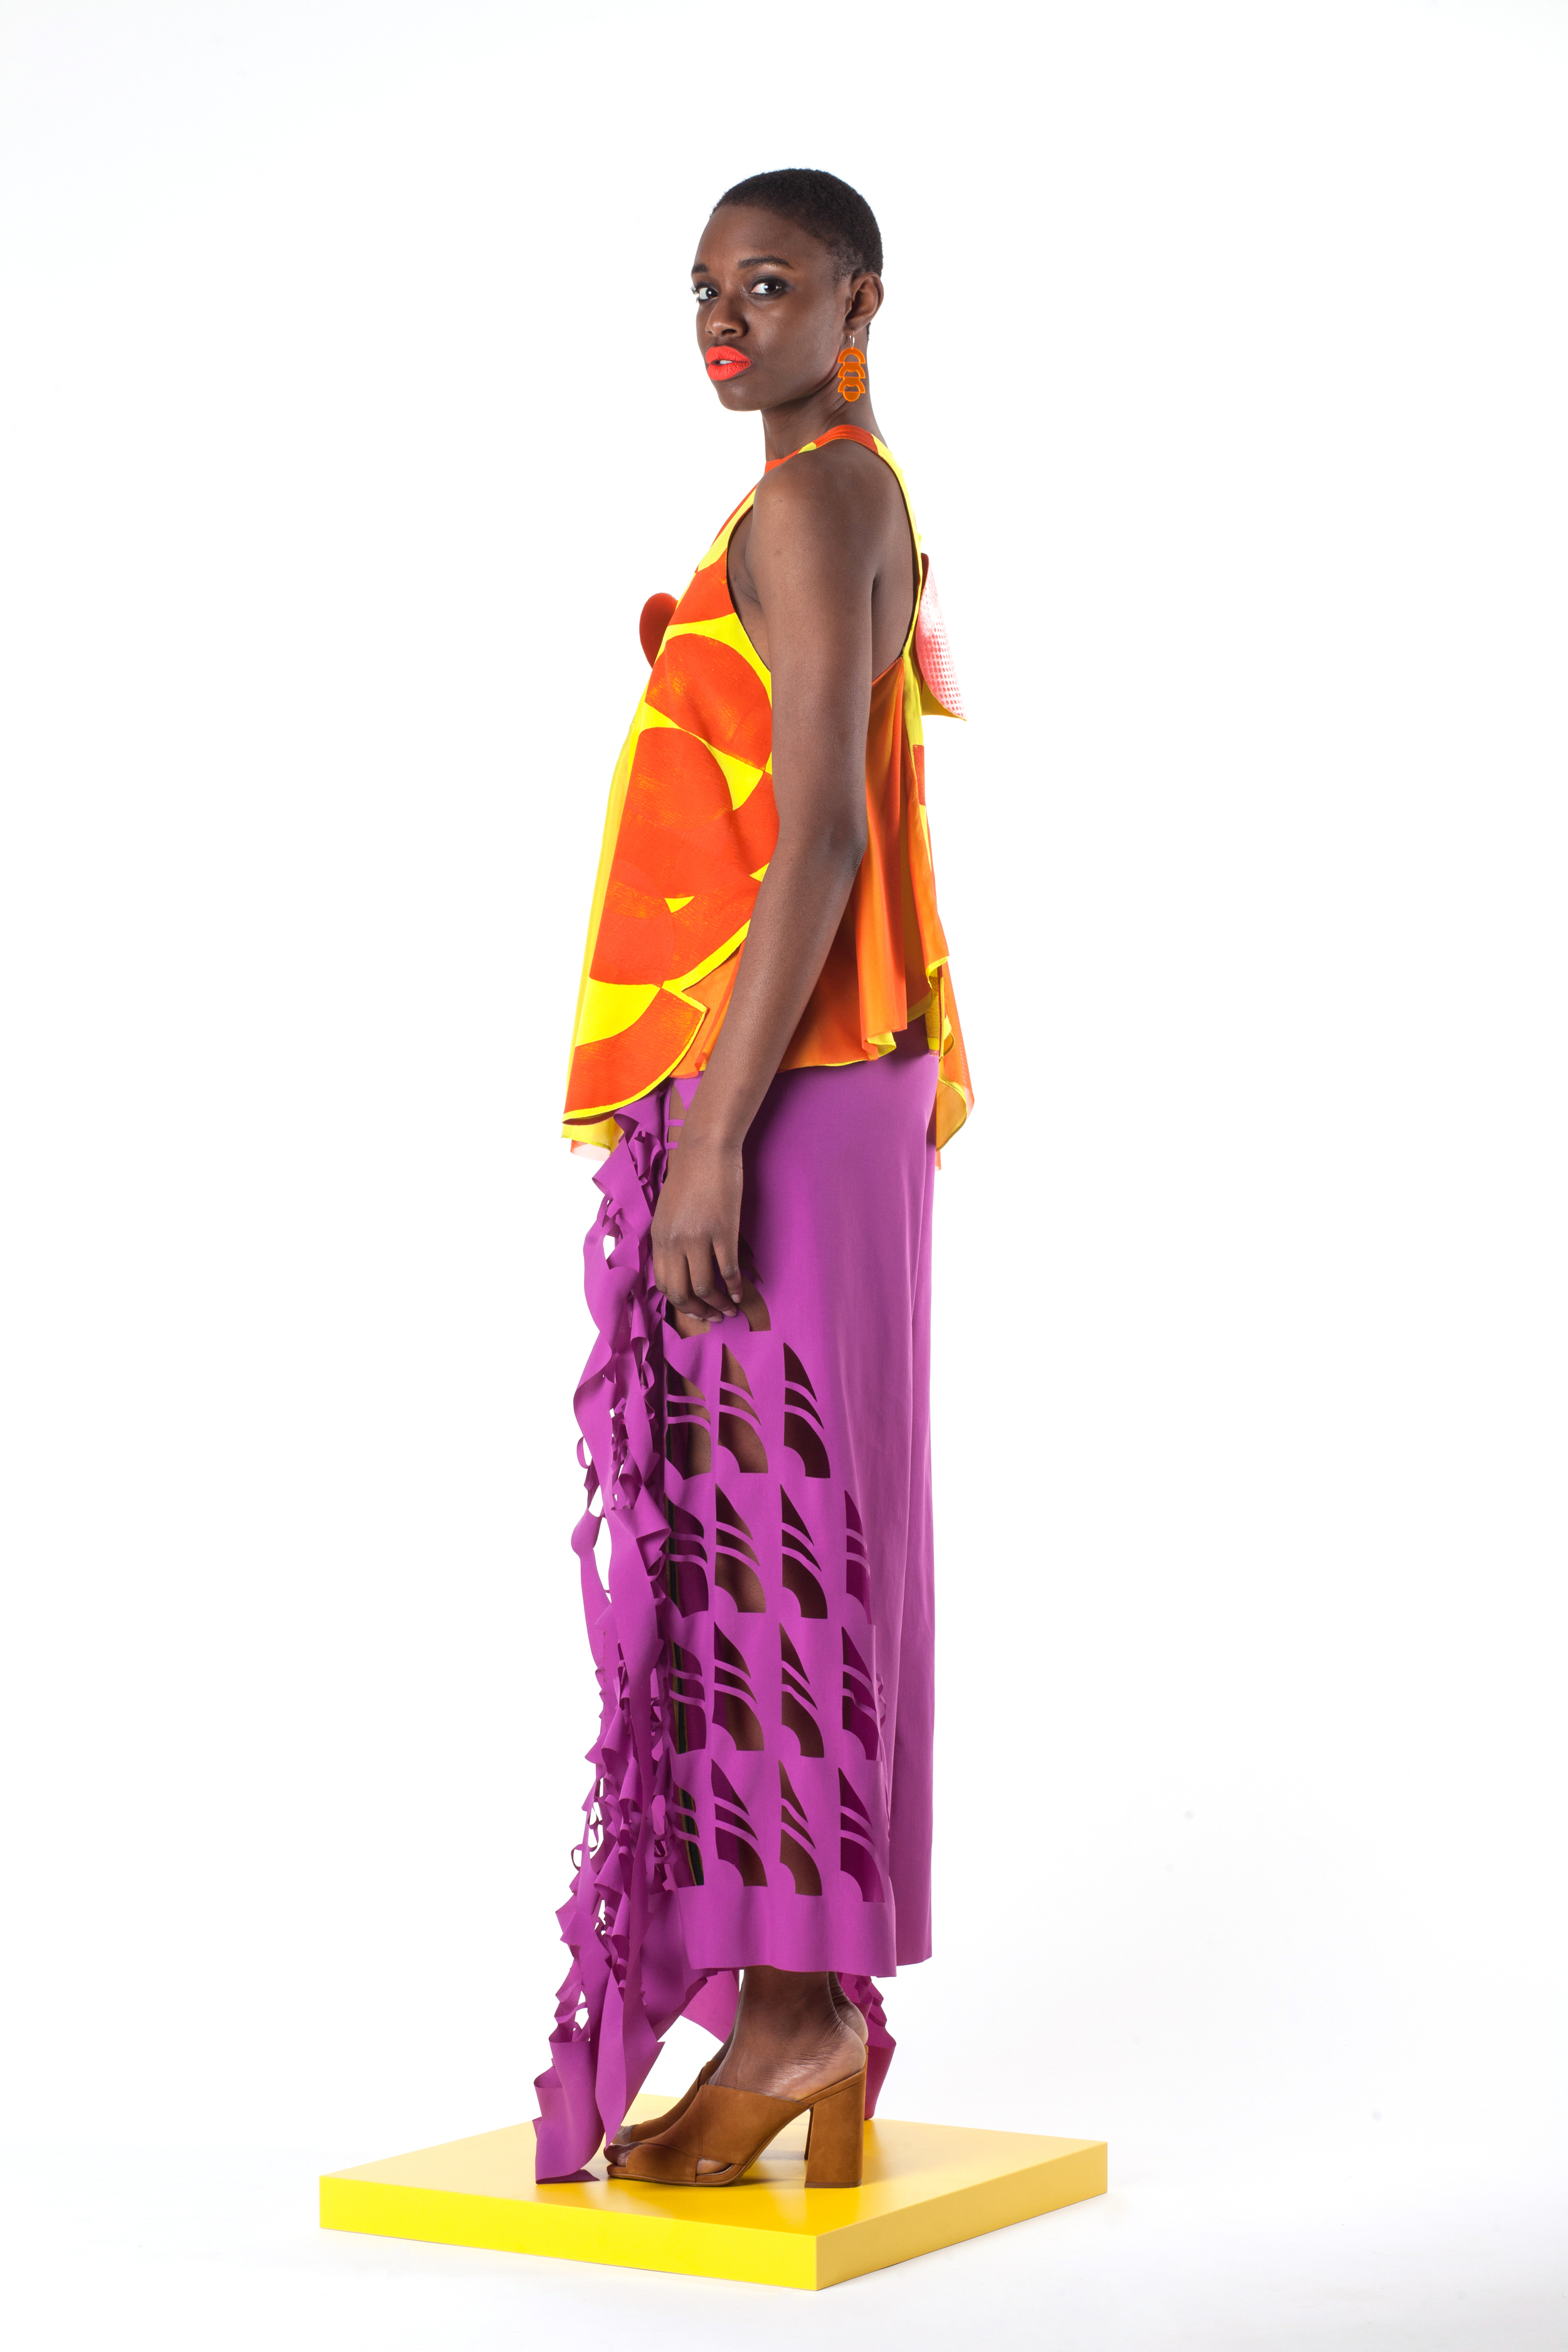 Block Printed Silk and Mesh Top with Laser Cut Nylon Extended Seam Allowance Pants